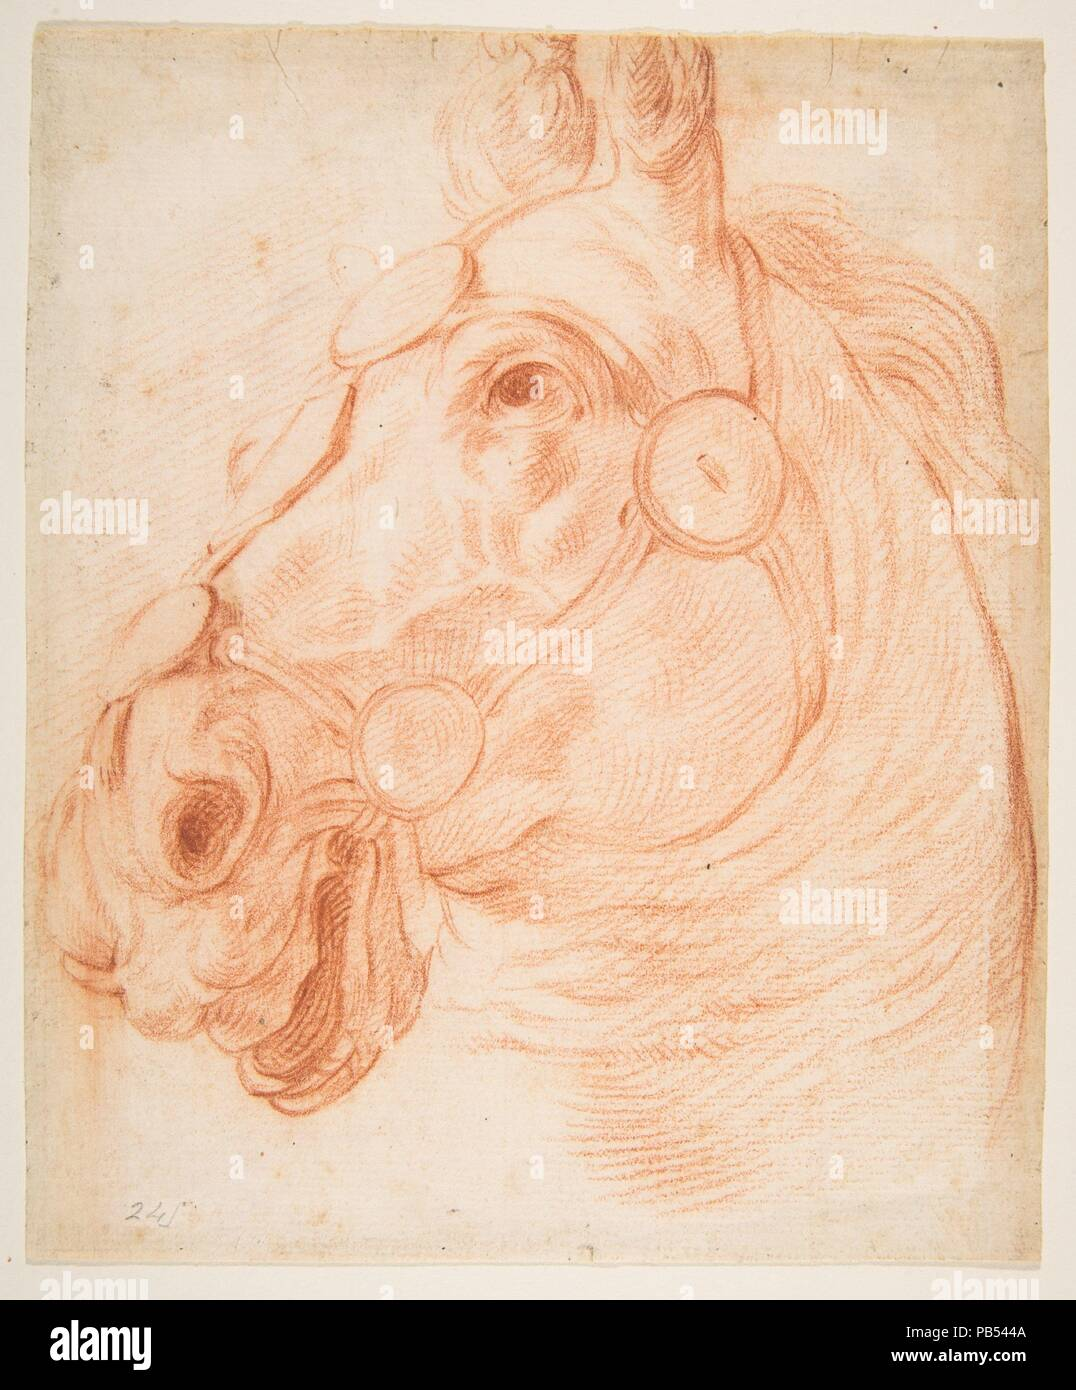 Study for a Horse's Head. Artist: Circle of Baldassarre Franceschini (il Volterrano) (Italian, Volterra 1611-1690 Florence) (?); Previously attributed to Stefano della Bella (Italian, Florence 1610-1664 Florence). Dimensions: 8 x 6 5/8in. (20.3 x 16.8cm). Date: ca. 1650. Museum: Metropolitan Museum of Art, New York, USA. - Stock Image